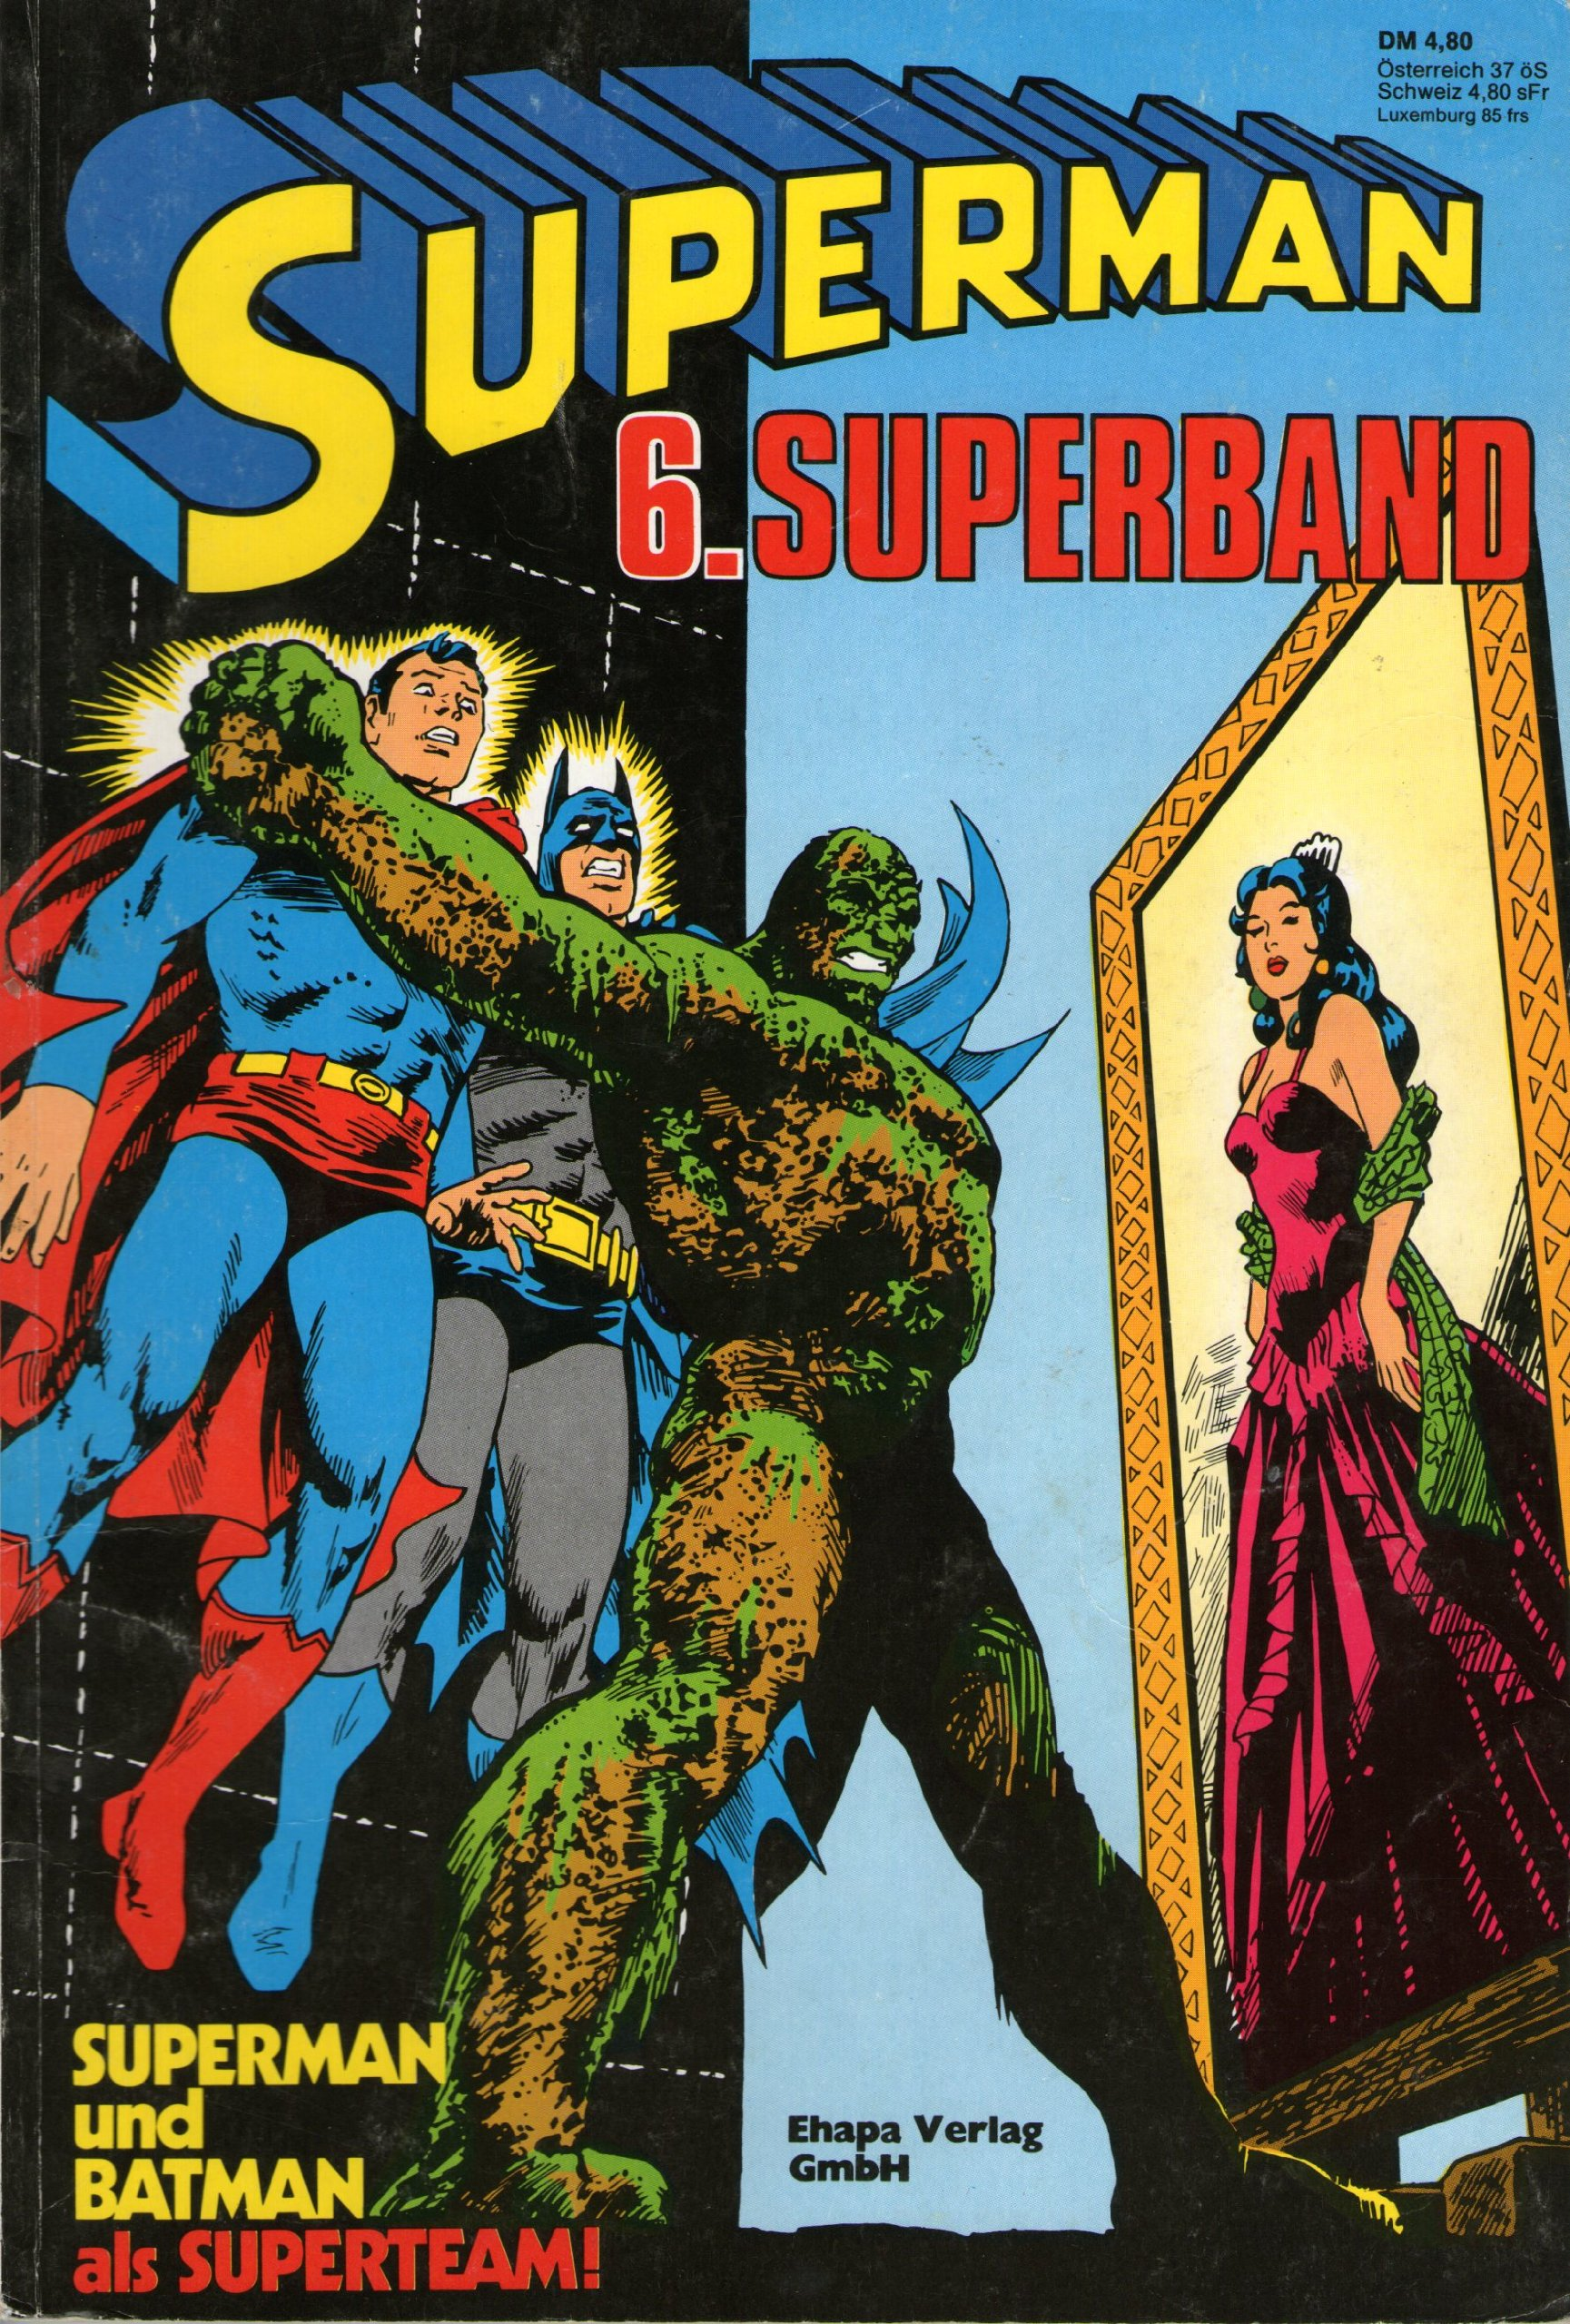 Superman Comic Superband # 6 - Superman und Batman - Ehapa Verlag 1980 (Ehapa Verlag, Superman, Superband) Comic – 1980 B008VHWD5Y Belletristik - Comic Cartoon